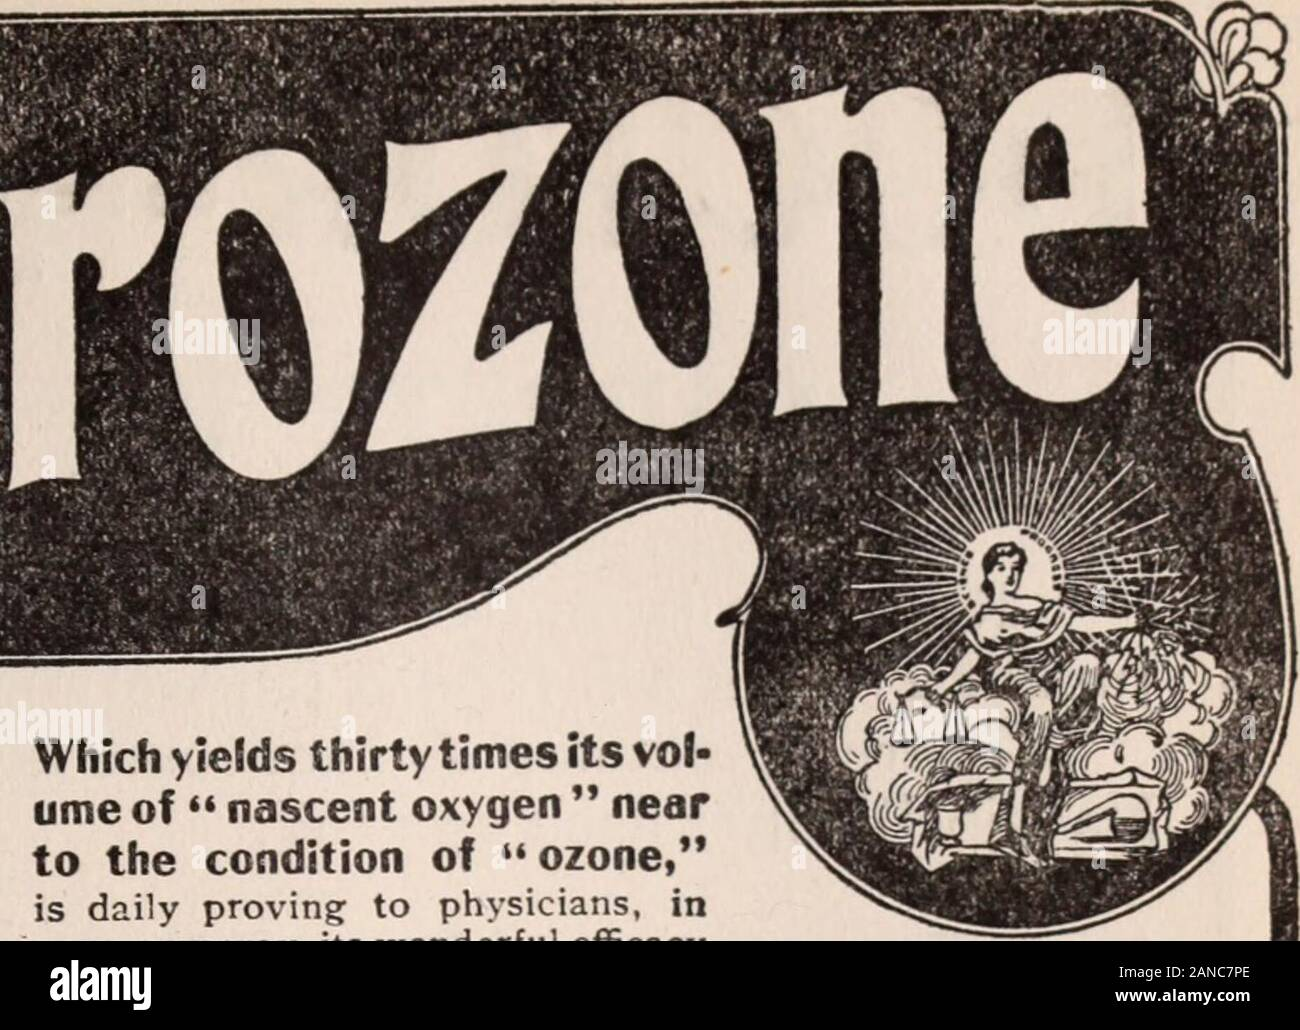 Critique . Which yields thirty times its vol-ume of nascent oxygen nearto the condition of ozone, is daily proving to physicians, insome new way, its wonderful efficacyin stubborn cases of Eczema, Psoriasis, Salt Rheam, Itch,Barbers Itch, Erysipelas, Ivy Poisoning, Ringworm,Herpes Zoster or Zona, etc. Acne, Pimples on Faceare cleared up and the pores healed by HYDROZONE and GLYCOZONEin a way that ismagical. Try this treatment; resultswill please you. Full method of treat-ment in my book, The TherapeuticalApplications of Hy-drozone and Glyco-zone ; SeventeenthEdition, 332 pages.Sent free to phy Stock Photo